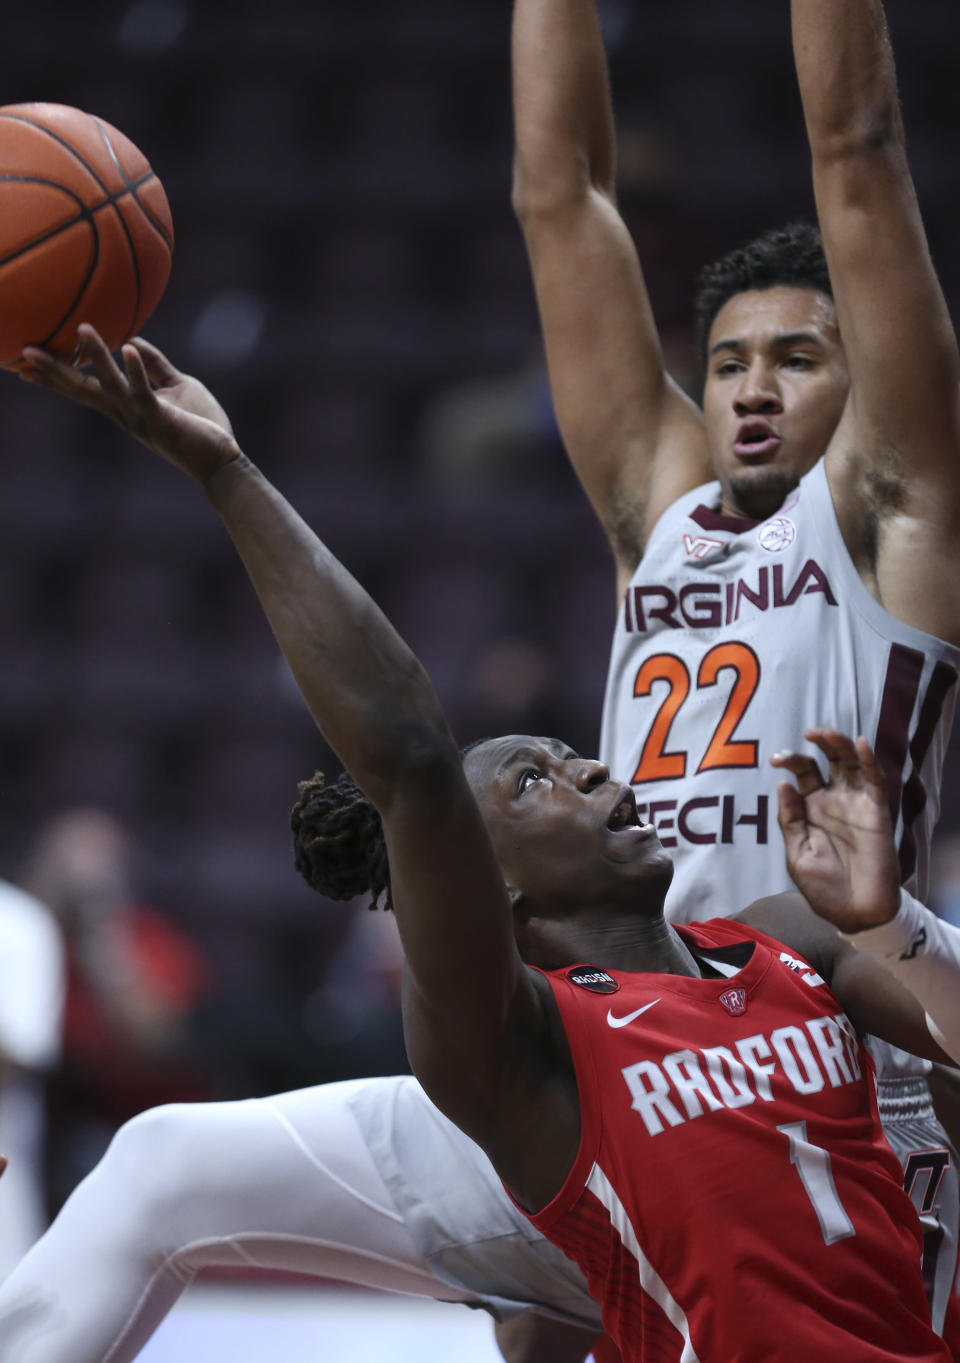 Radford's Keishon Porter (1) attempts to shoot past Virginia Tech's Keve Aluma (22) during the second half of an NCAA college basketball game, Wednesday Nov. 25, 2020, in Blacksburg Va. (Matt Gentry/The Roanoke Times via AP)